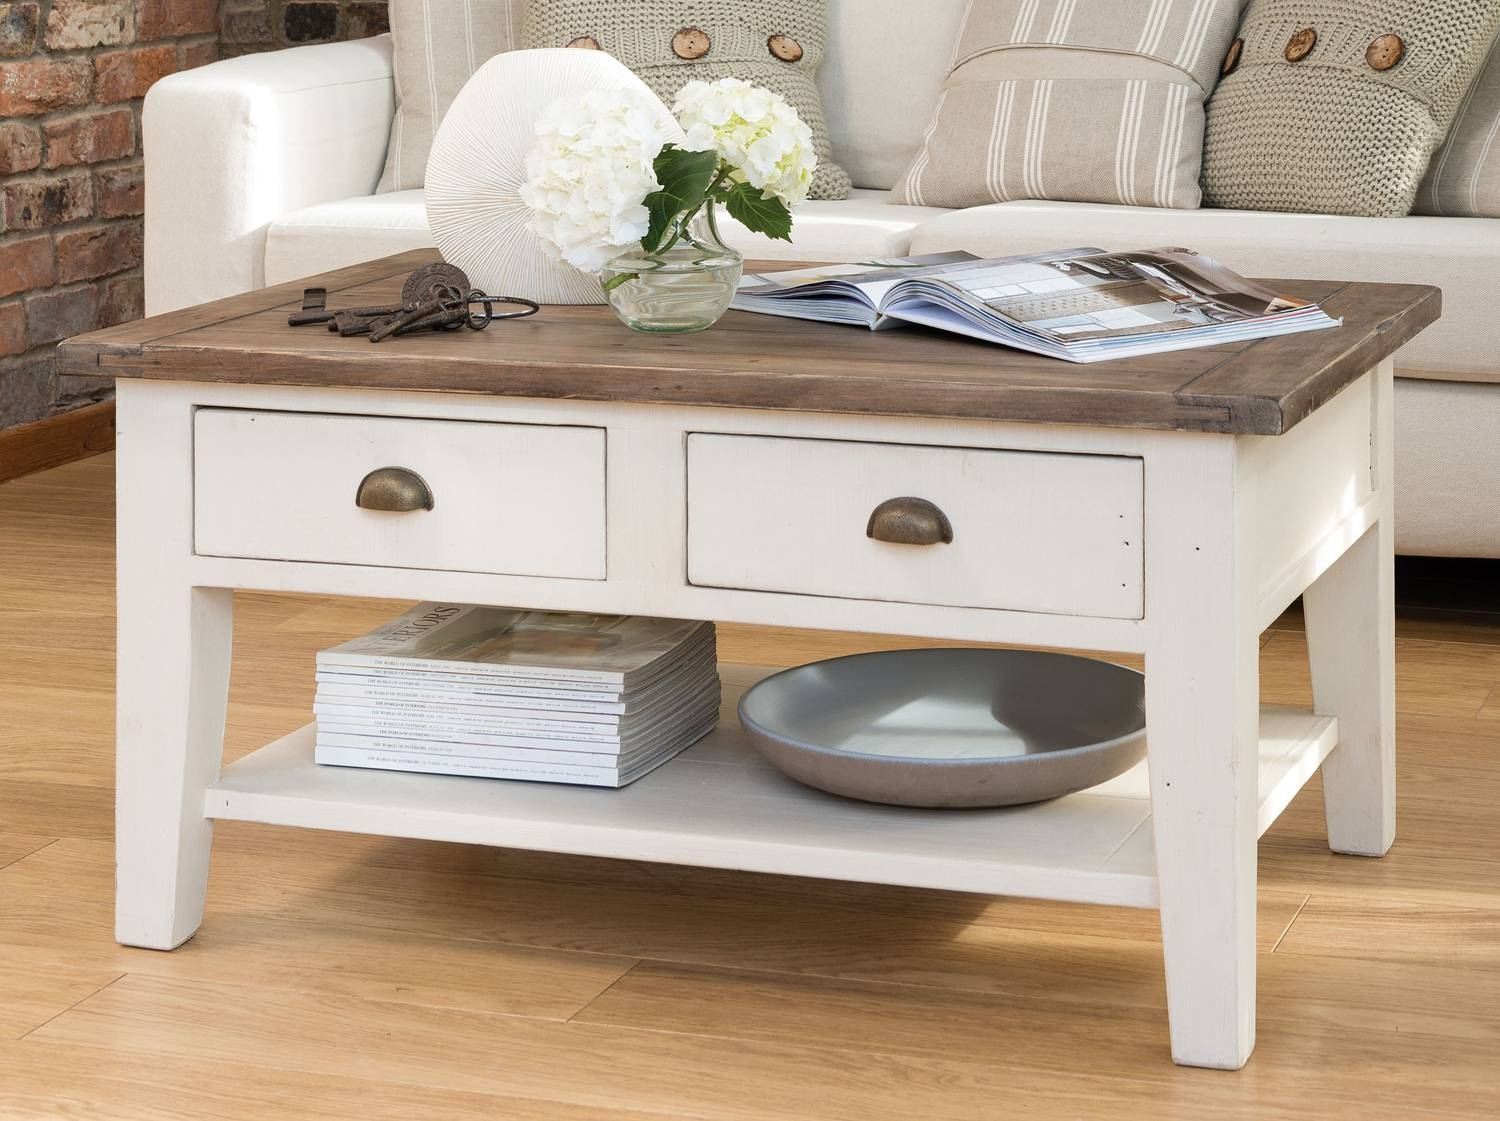 Coffee Table: Appealing French Coffee Table Designs French inside White French Coffee Tables (Image 12 of 30)